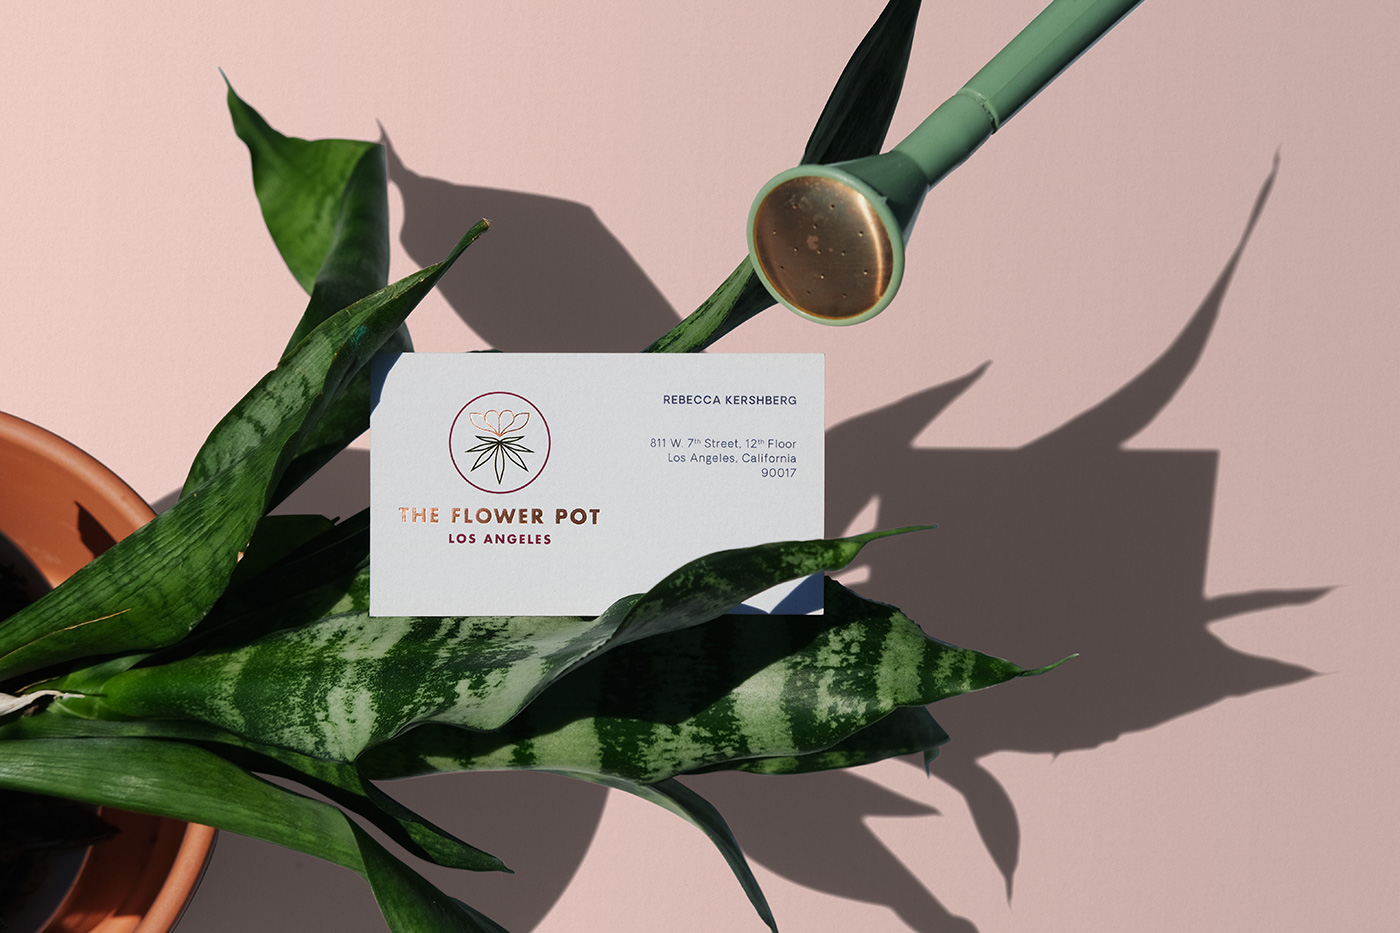 Outfit Branding & Design The Flower Pot Business Card